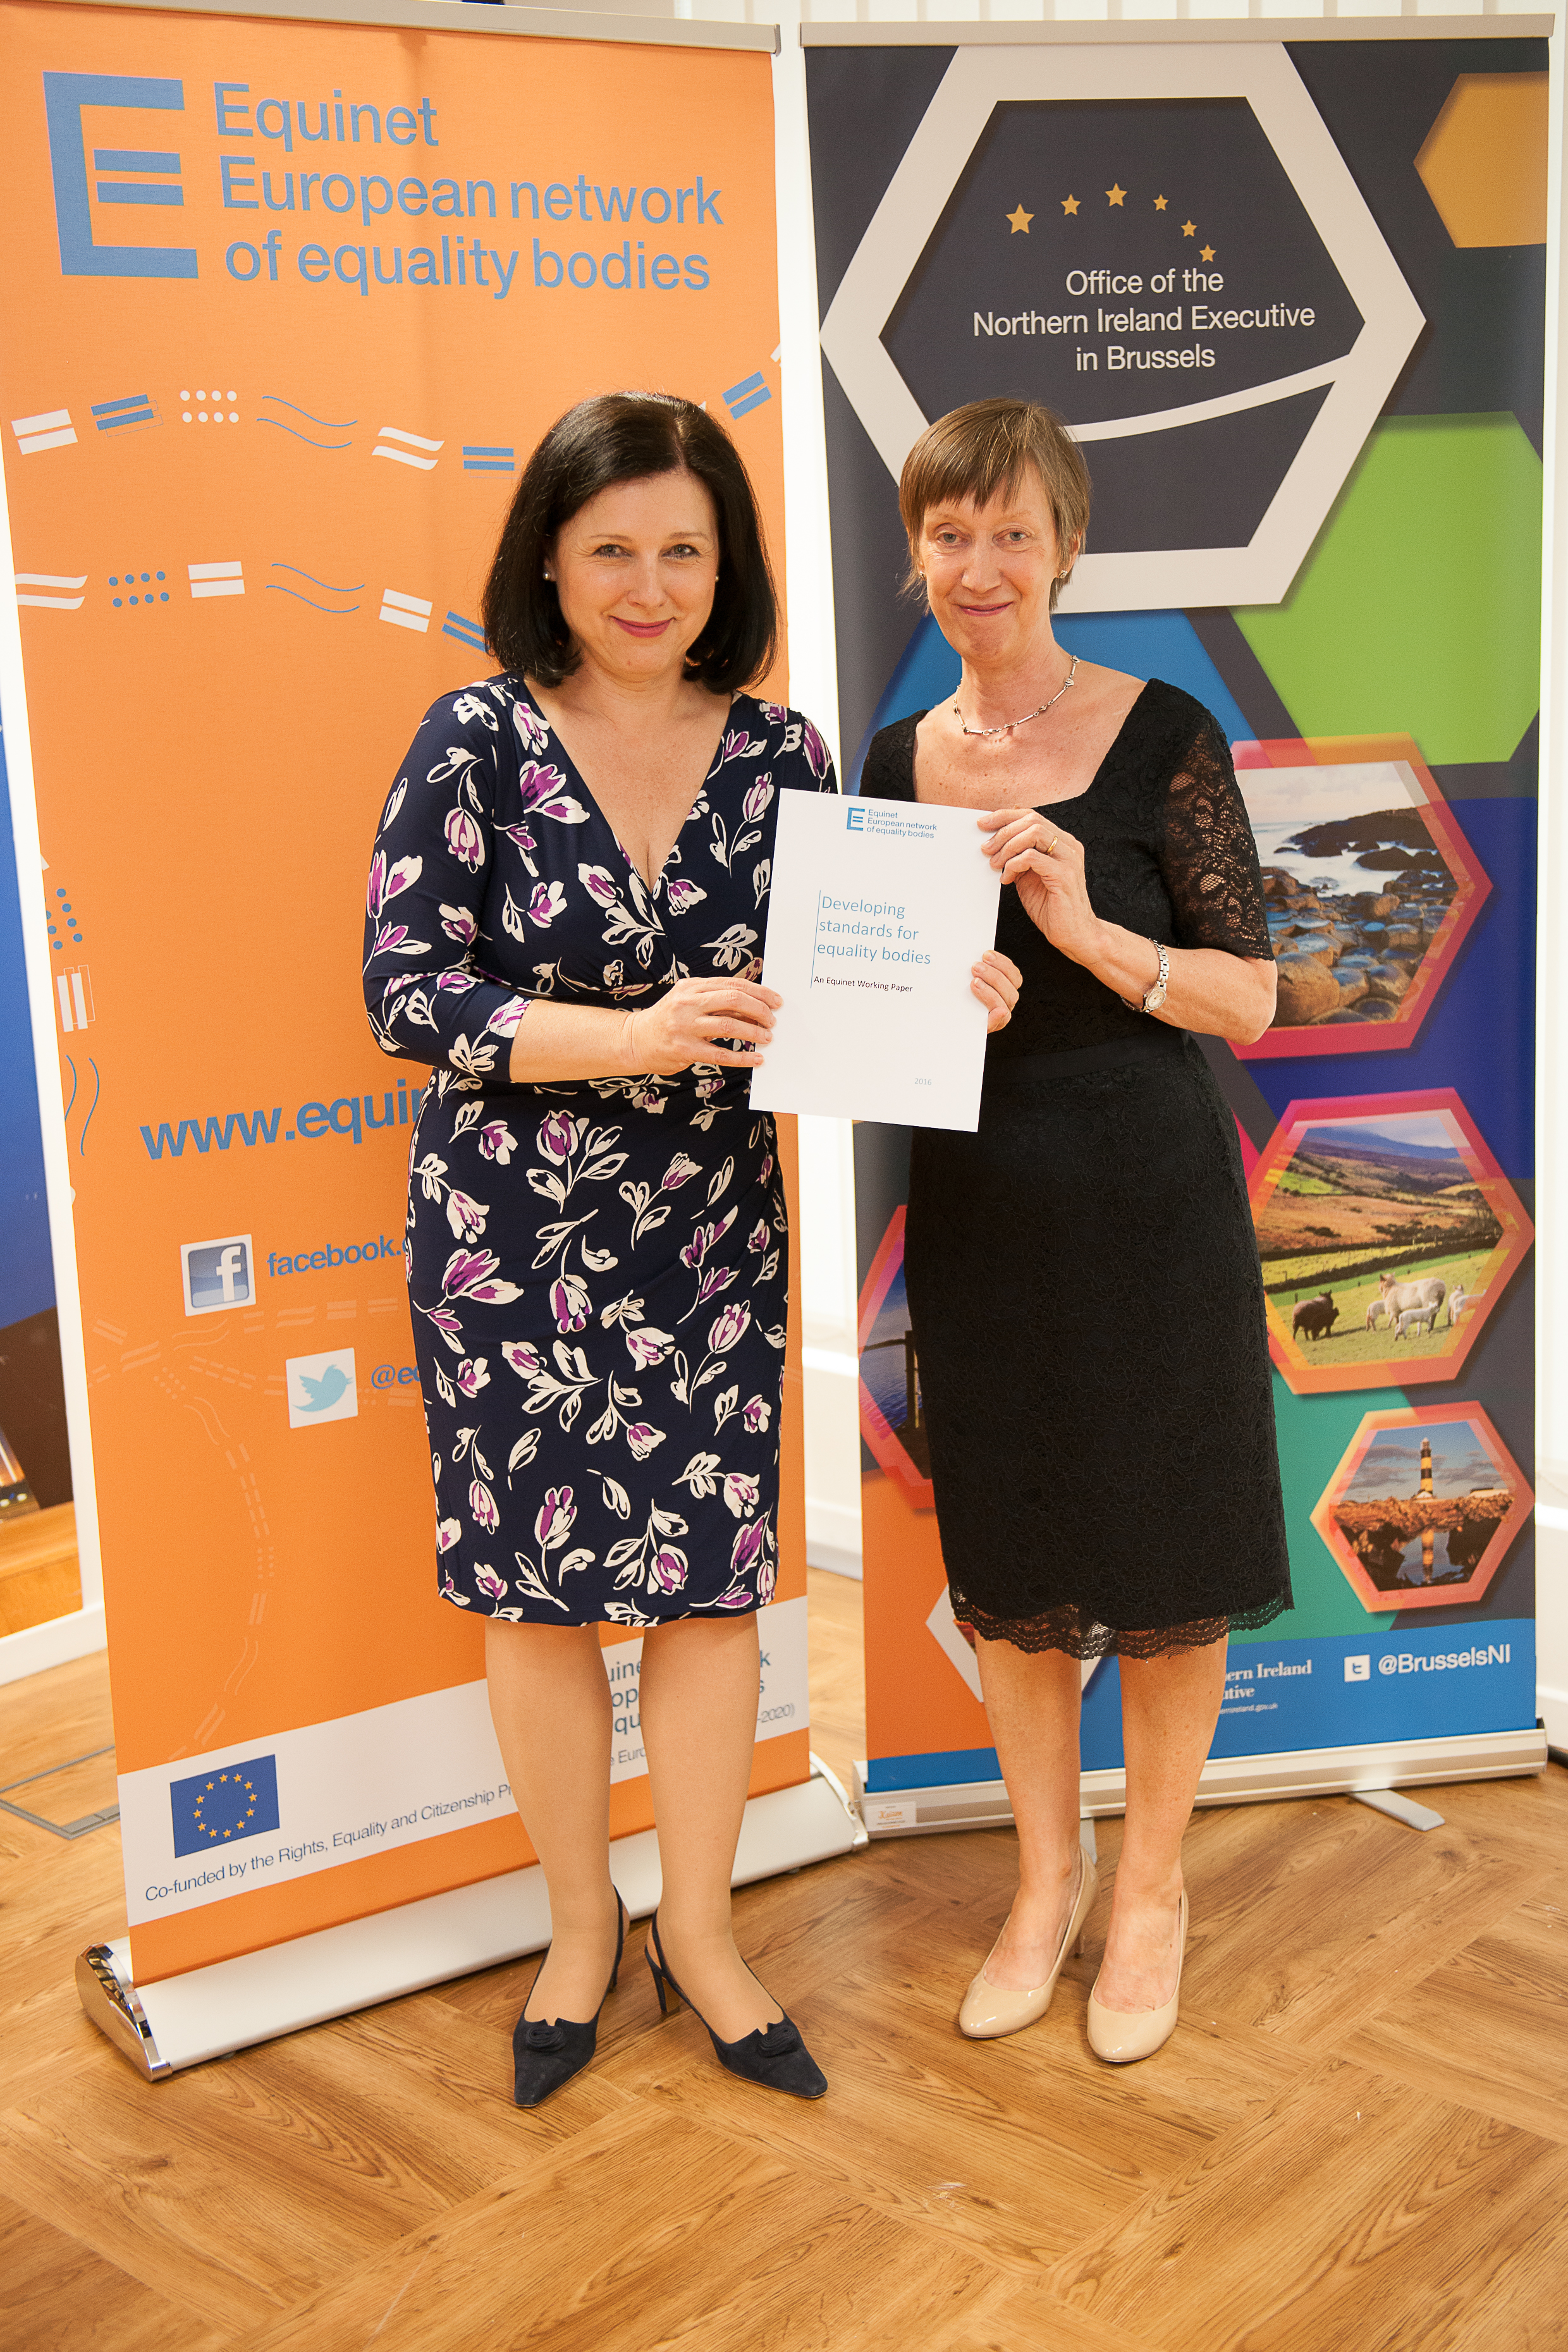 Photograph Commissioner Jourova with Equinet Chair Evelyn Collins